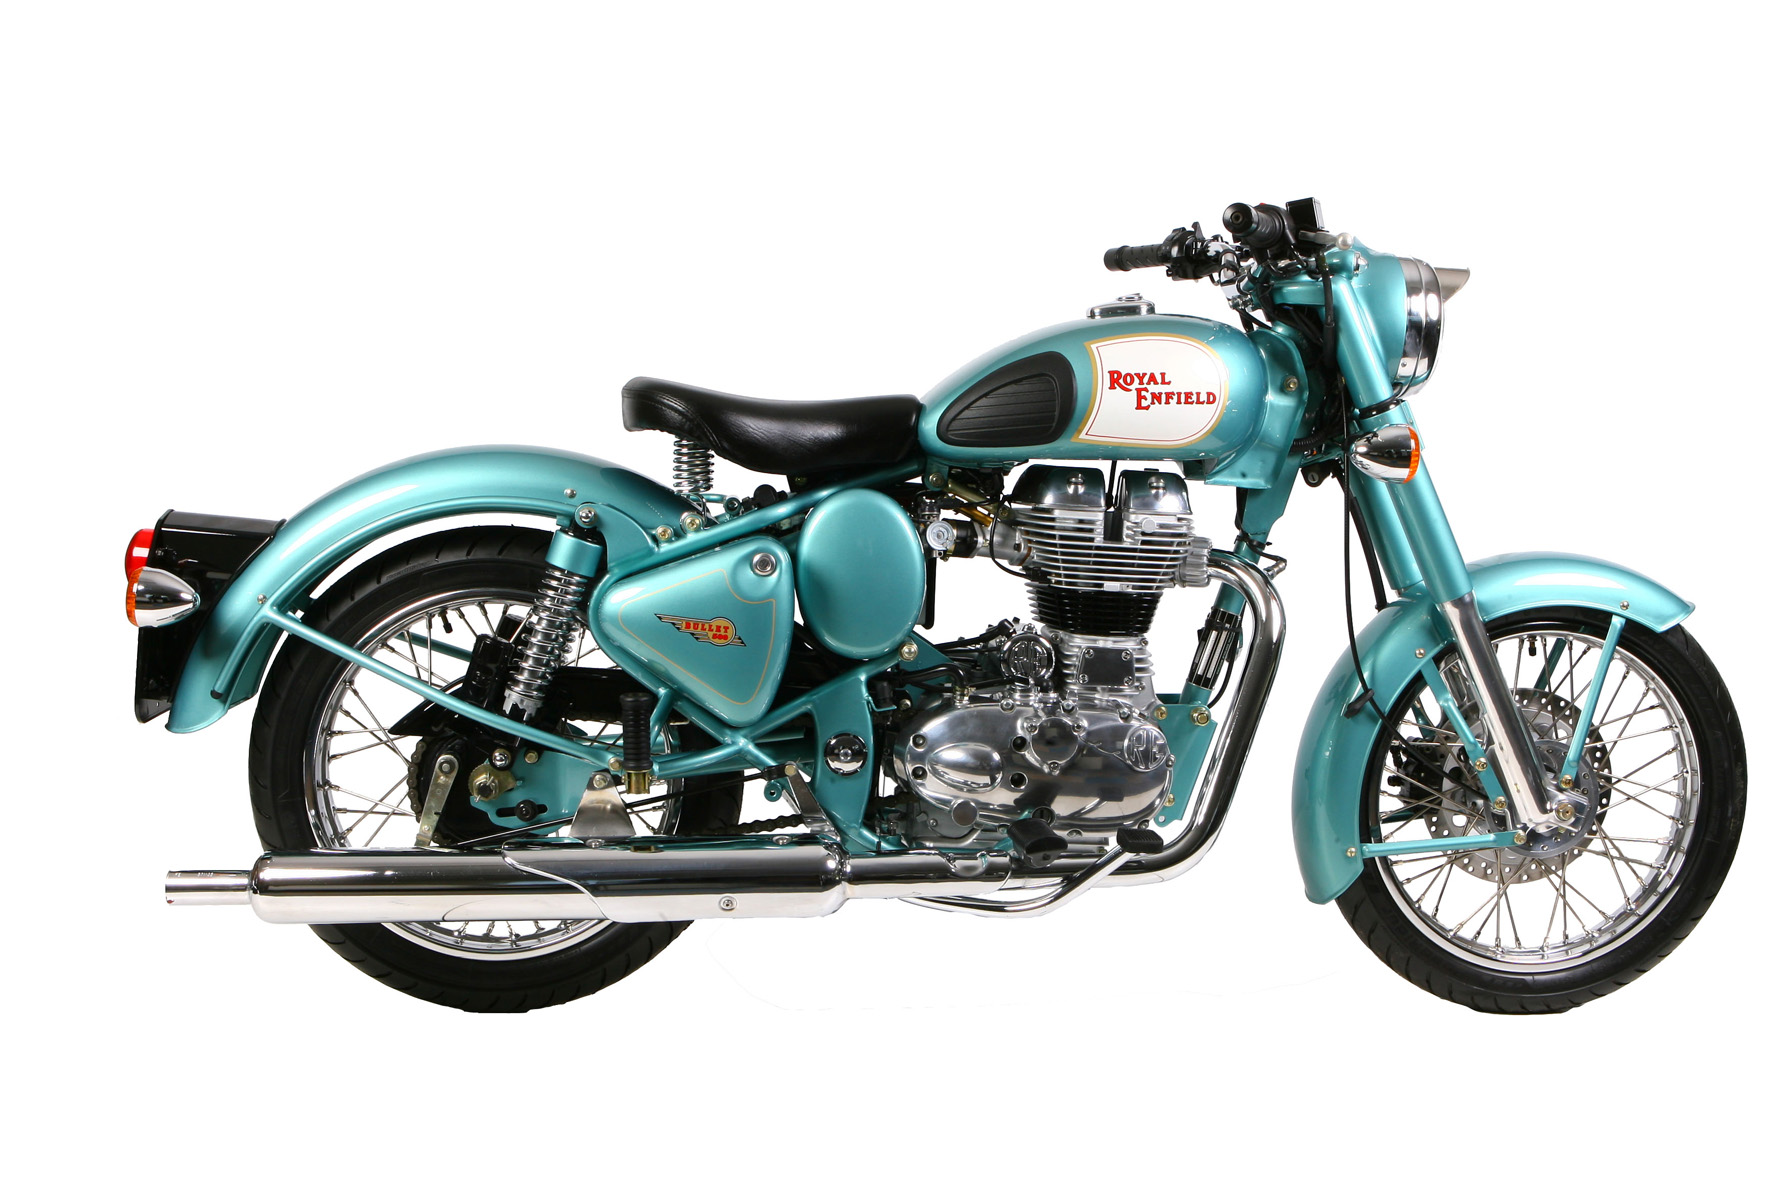 Royal enfield bullet photo - 2